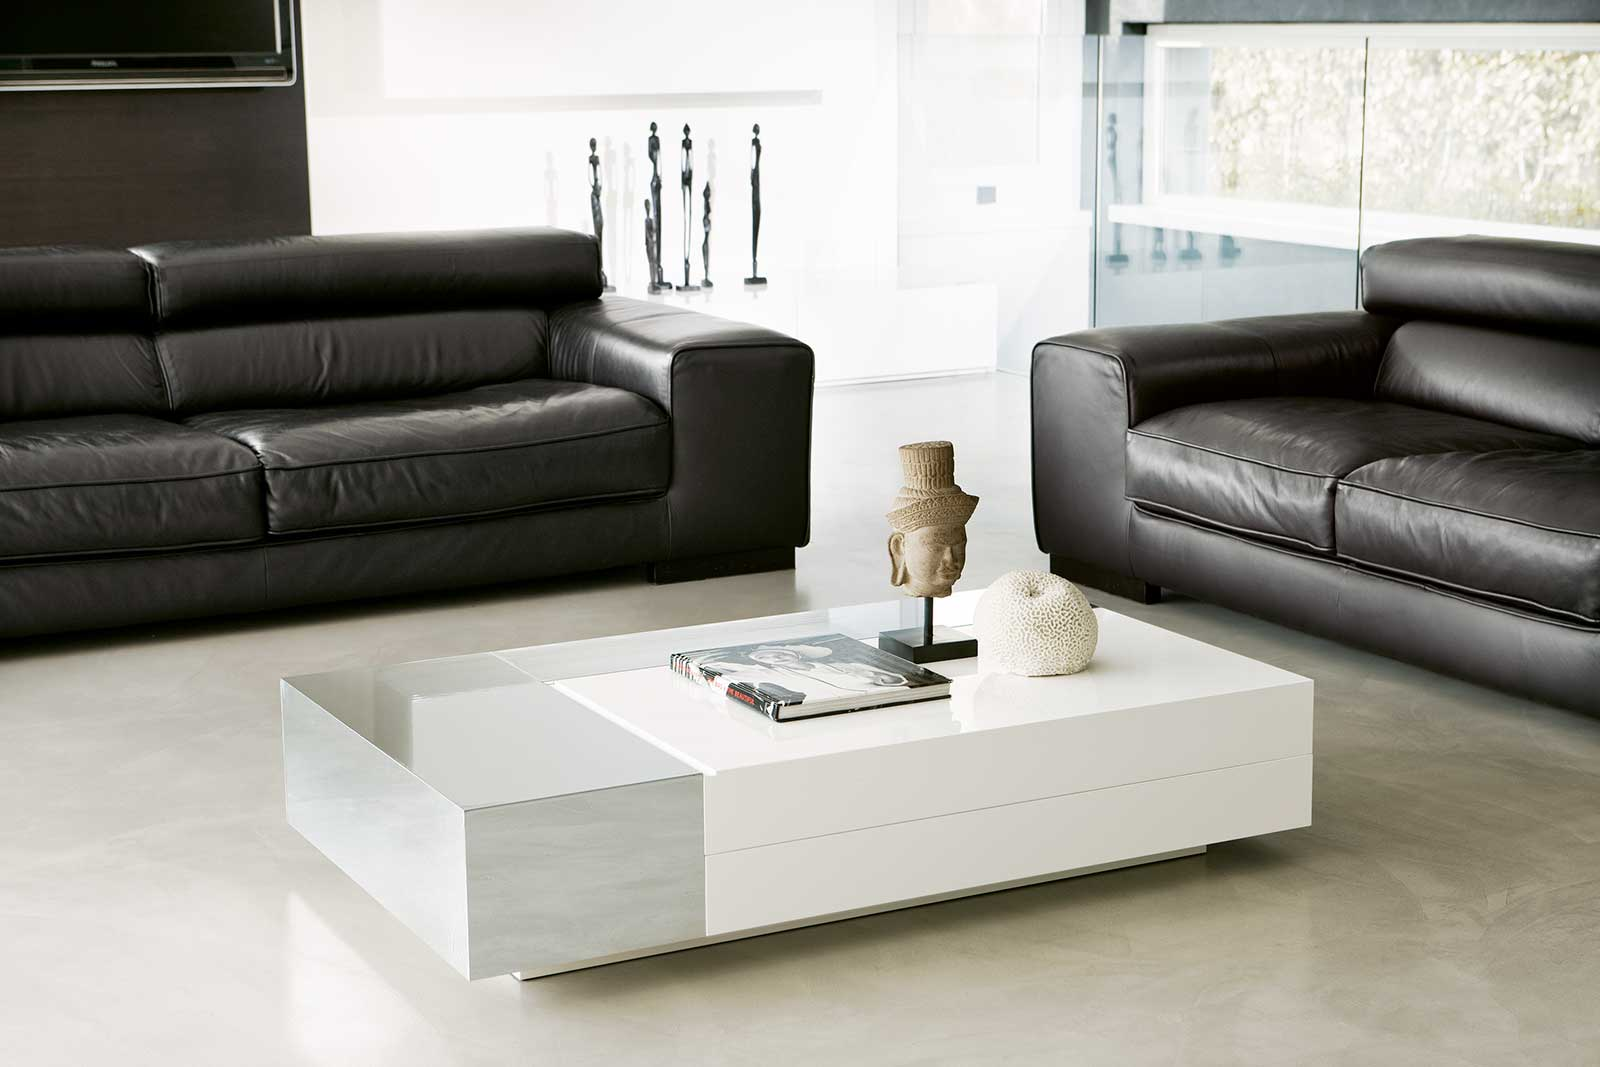 Ambrogio Sala designs a luxurious rectangular coffee table. Lacquered wood fibre. The sliding top hides a storage compartment. Free home delivery.